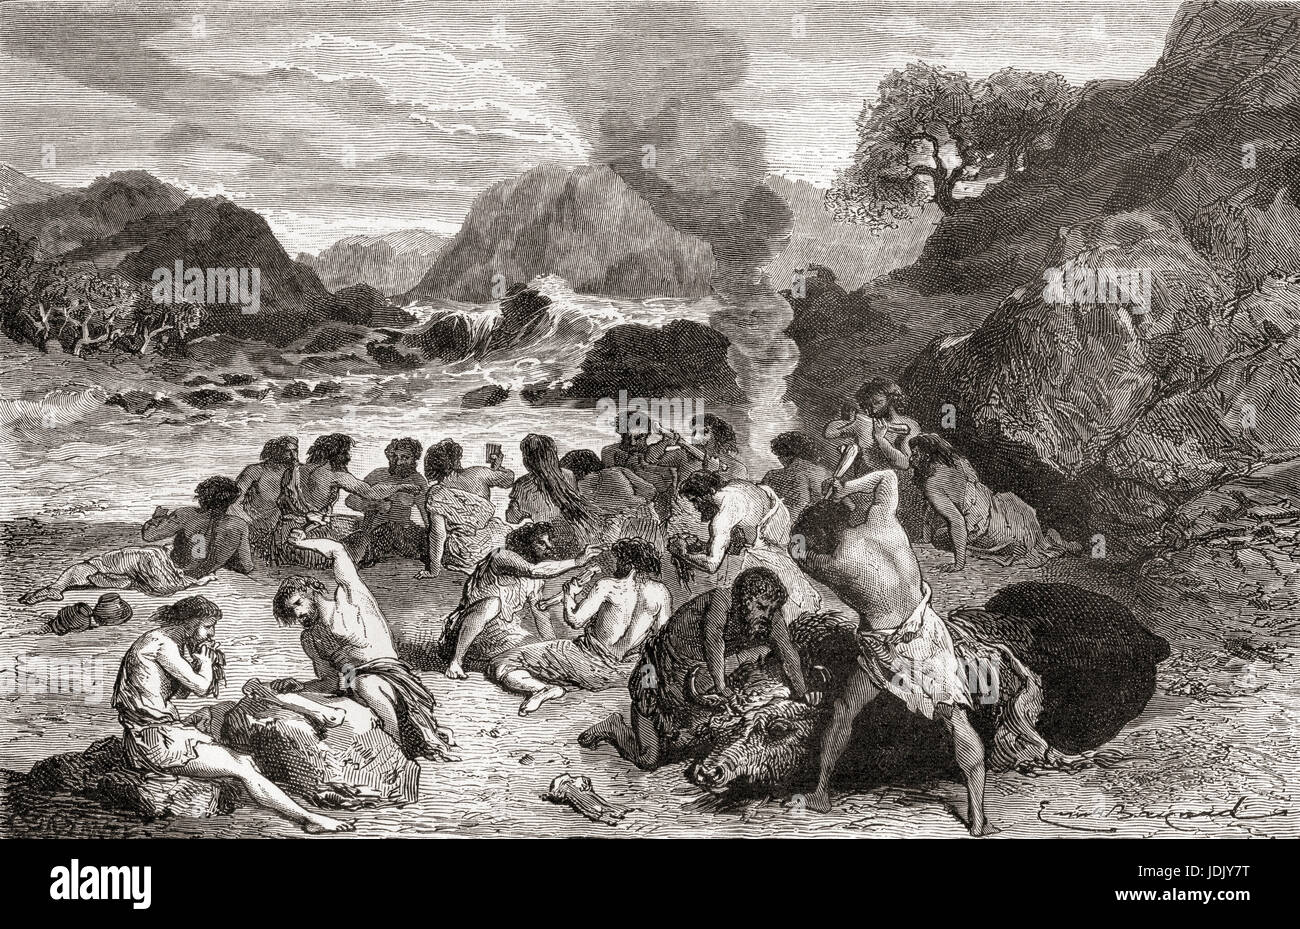 Neanderthal man feasting on their kill during prehistoric times. From L'Homme Primitif, published 1870. - Stock Image